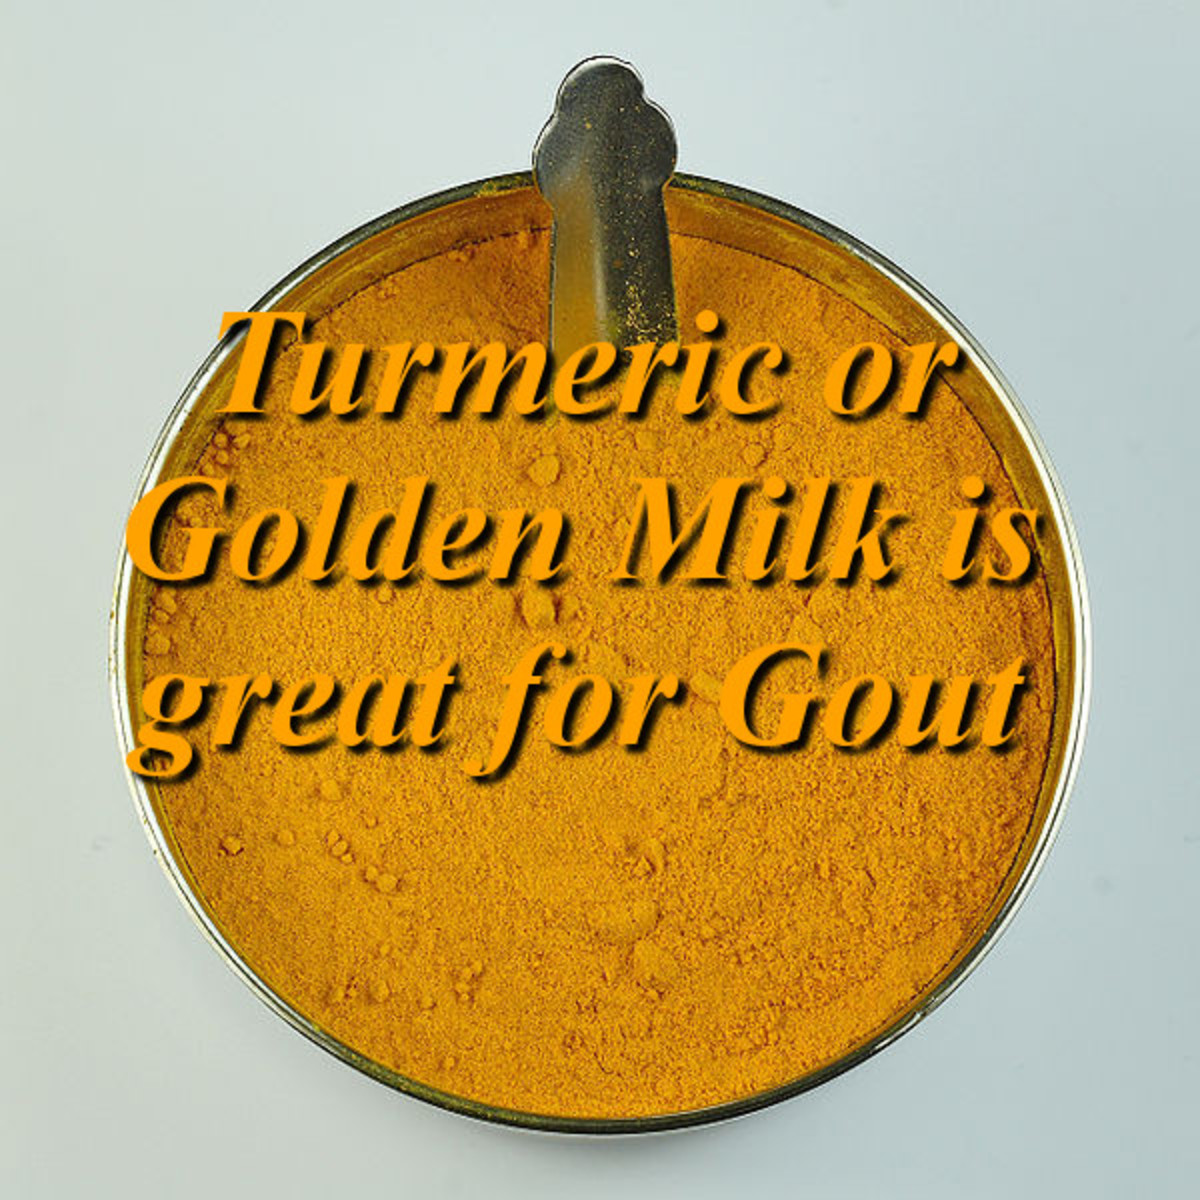 Golden Milk is Great for Gout